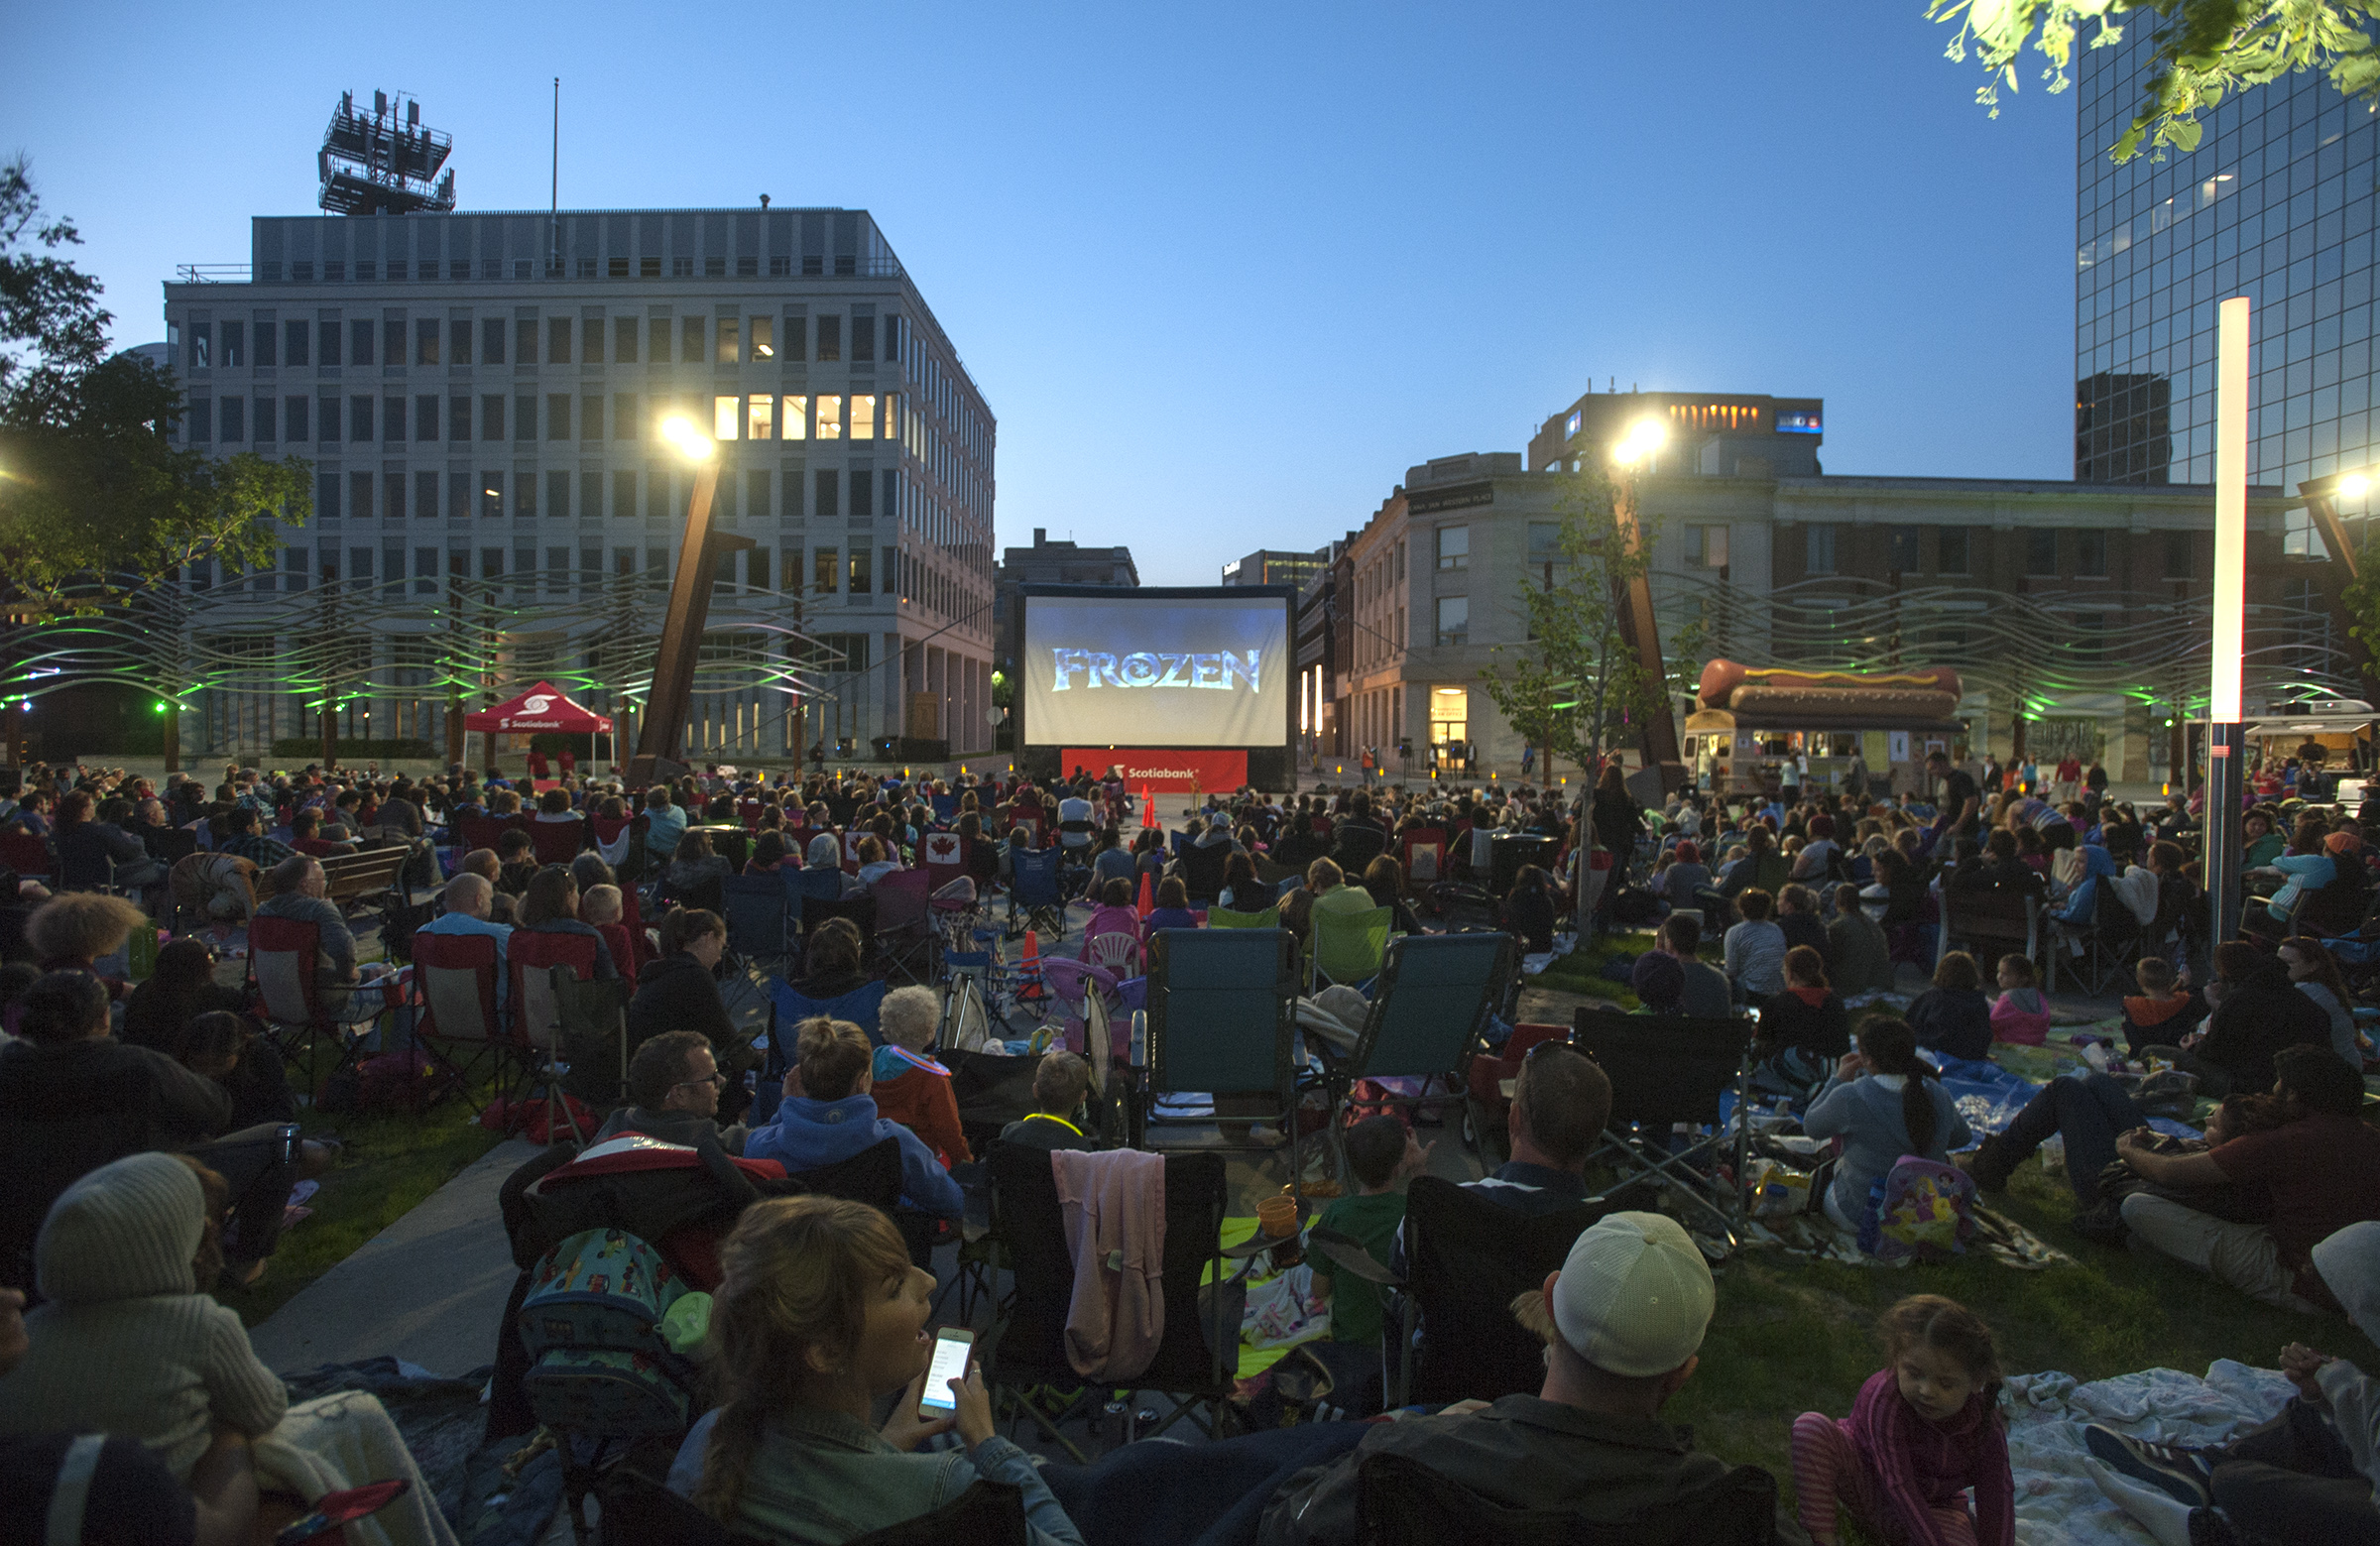 Scotiabank free outdoor movie event in Victoria Park.